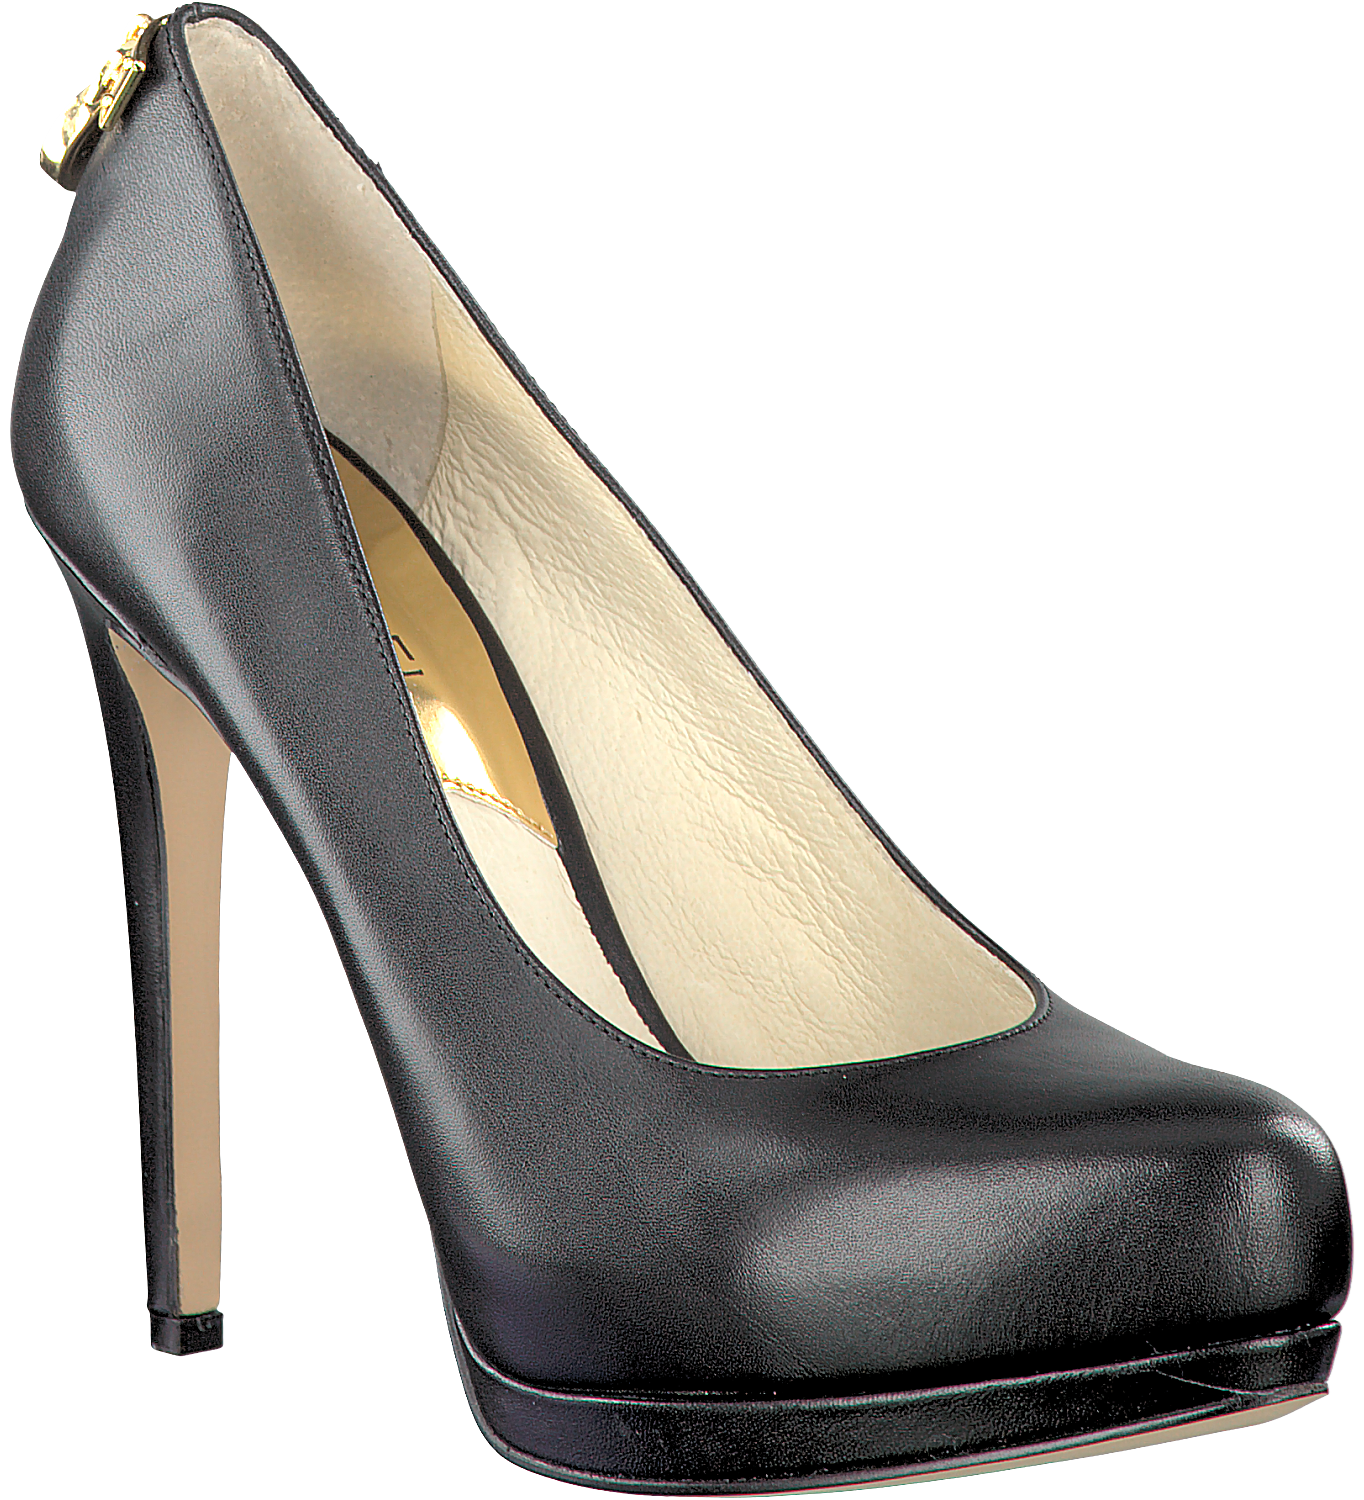 e2f35d818d8 Zwarte MICHAEL KORS Pumps HAMILTON PUMP. MICHAEL KORS. -70%. Previous